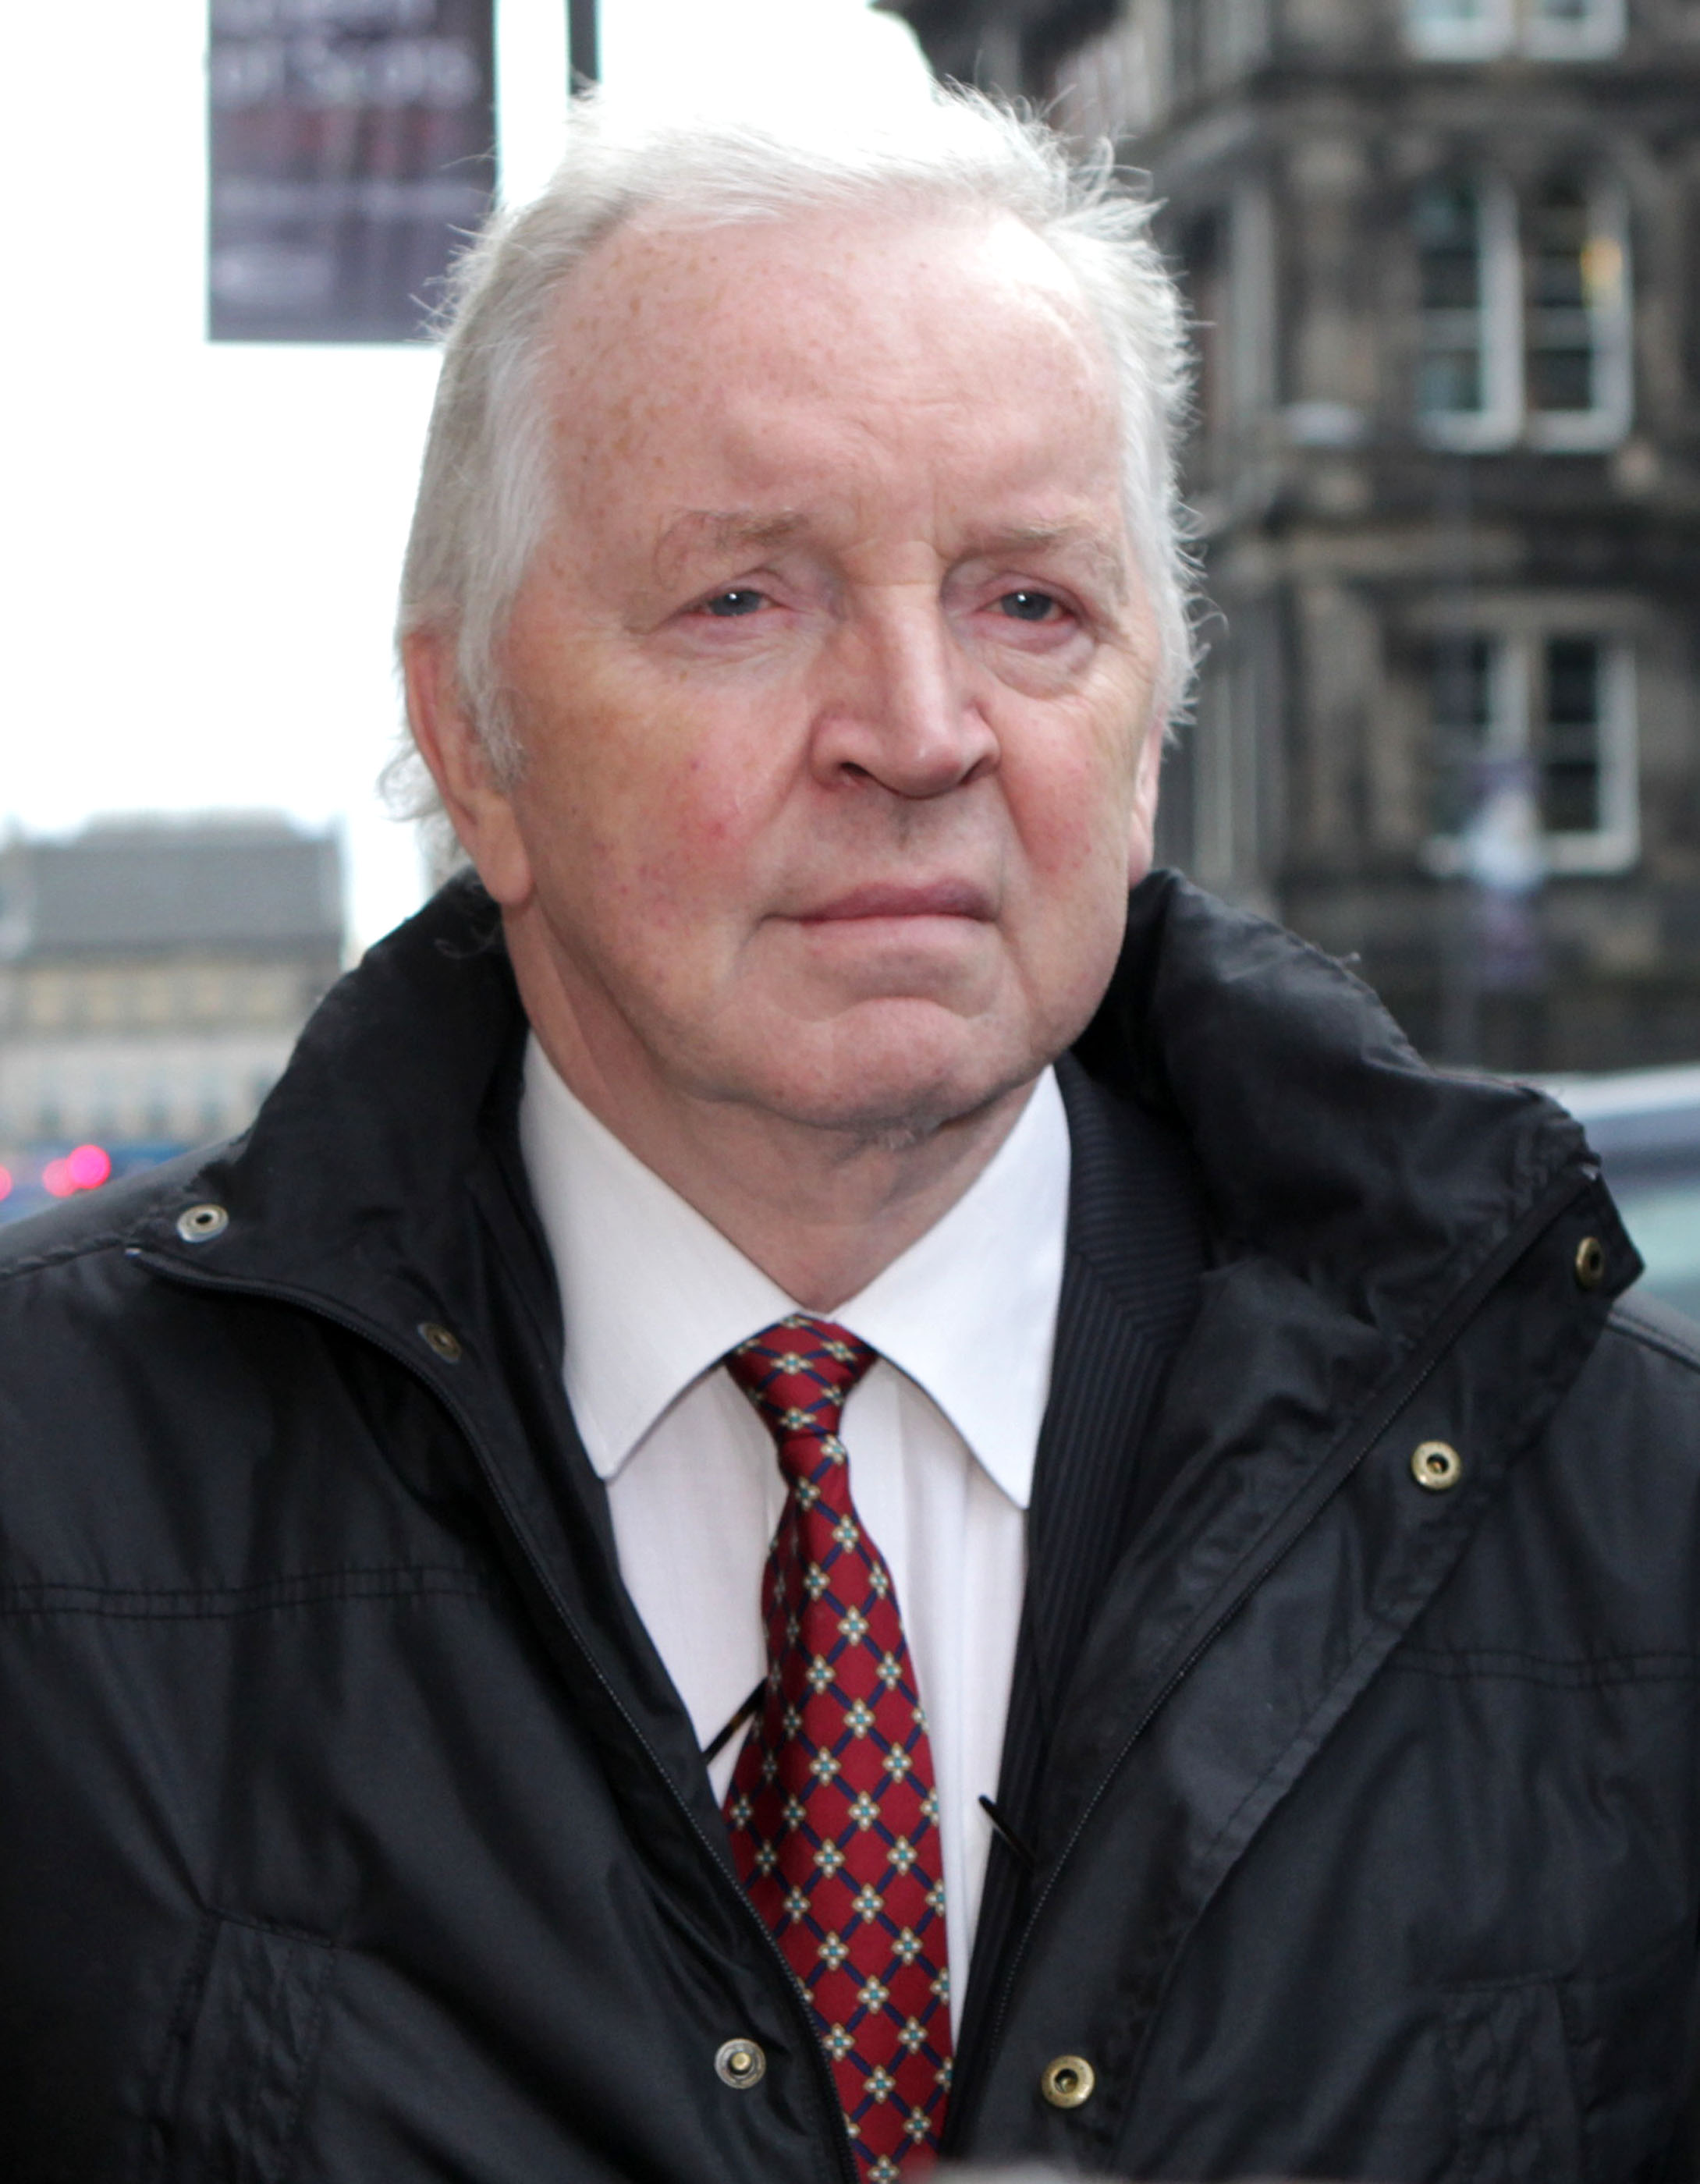 Disgraced former MSP Bill Walker publishes his story